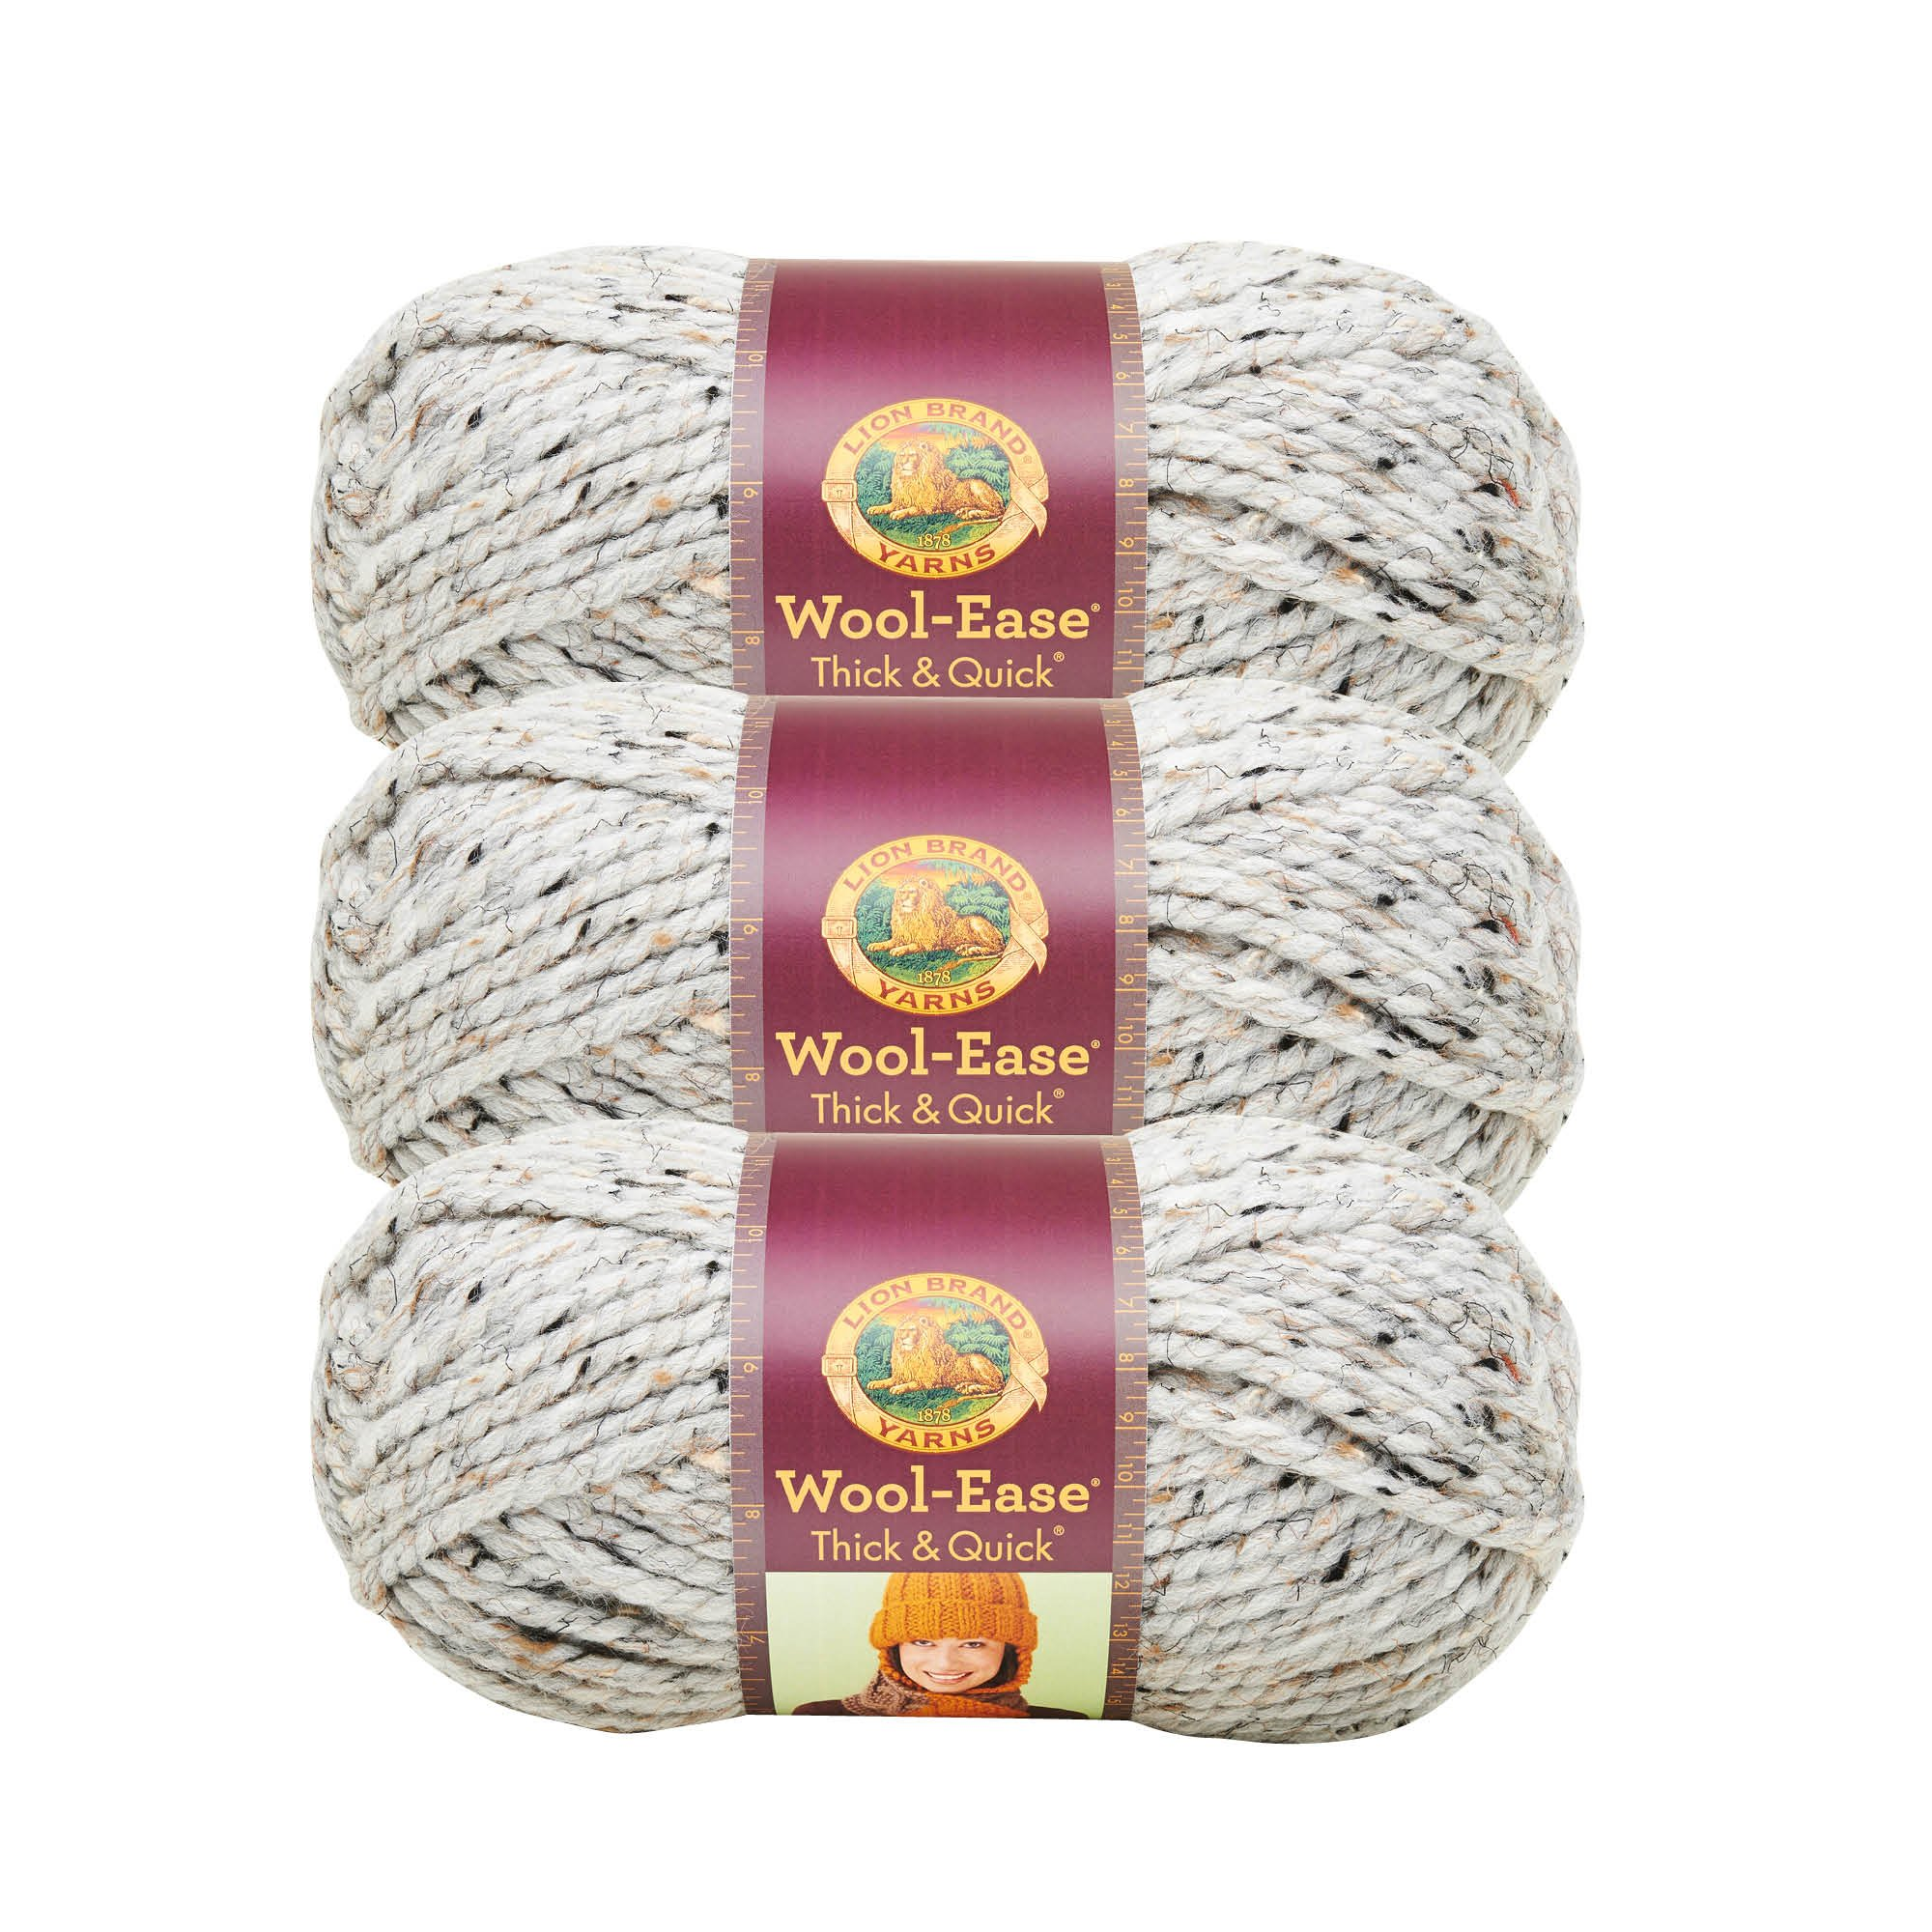 (3 Pack) Lion Brand Yarn 640-154D Wool-Ease Thick and Quick Yarn, 97 Meters, Grey Marble